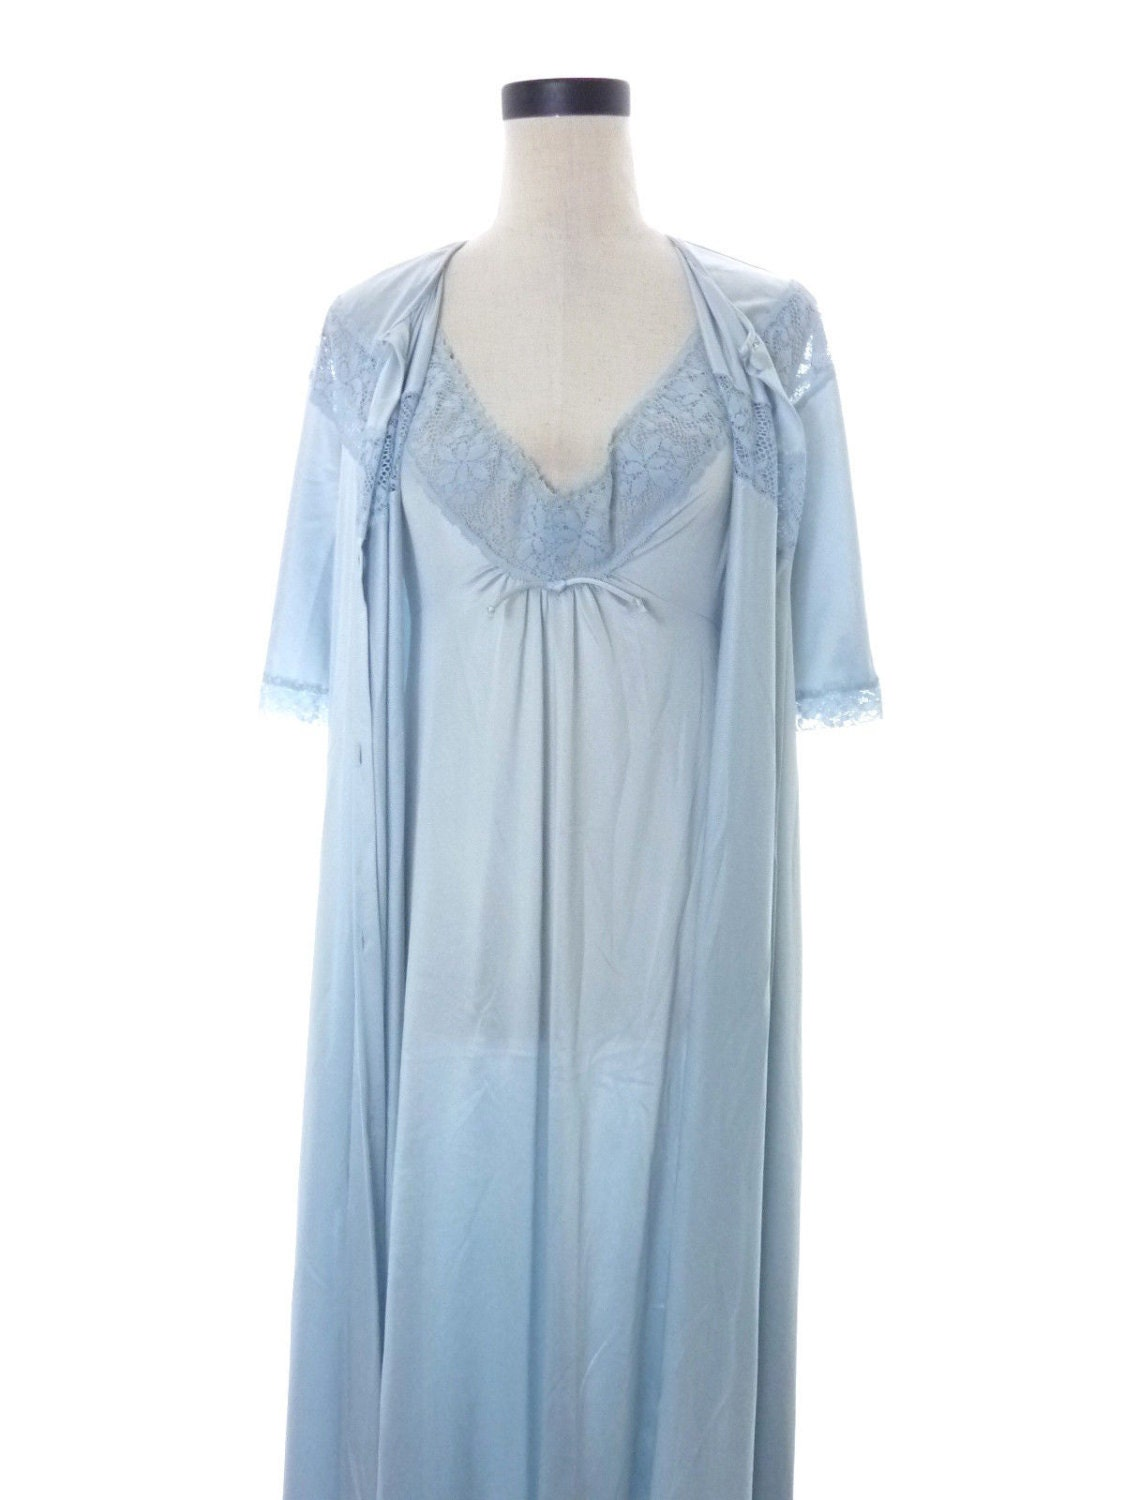 Vintage Vanity Fair Small Long Nightgown And Medium Robe